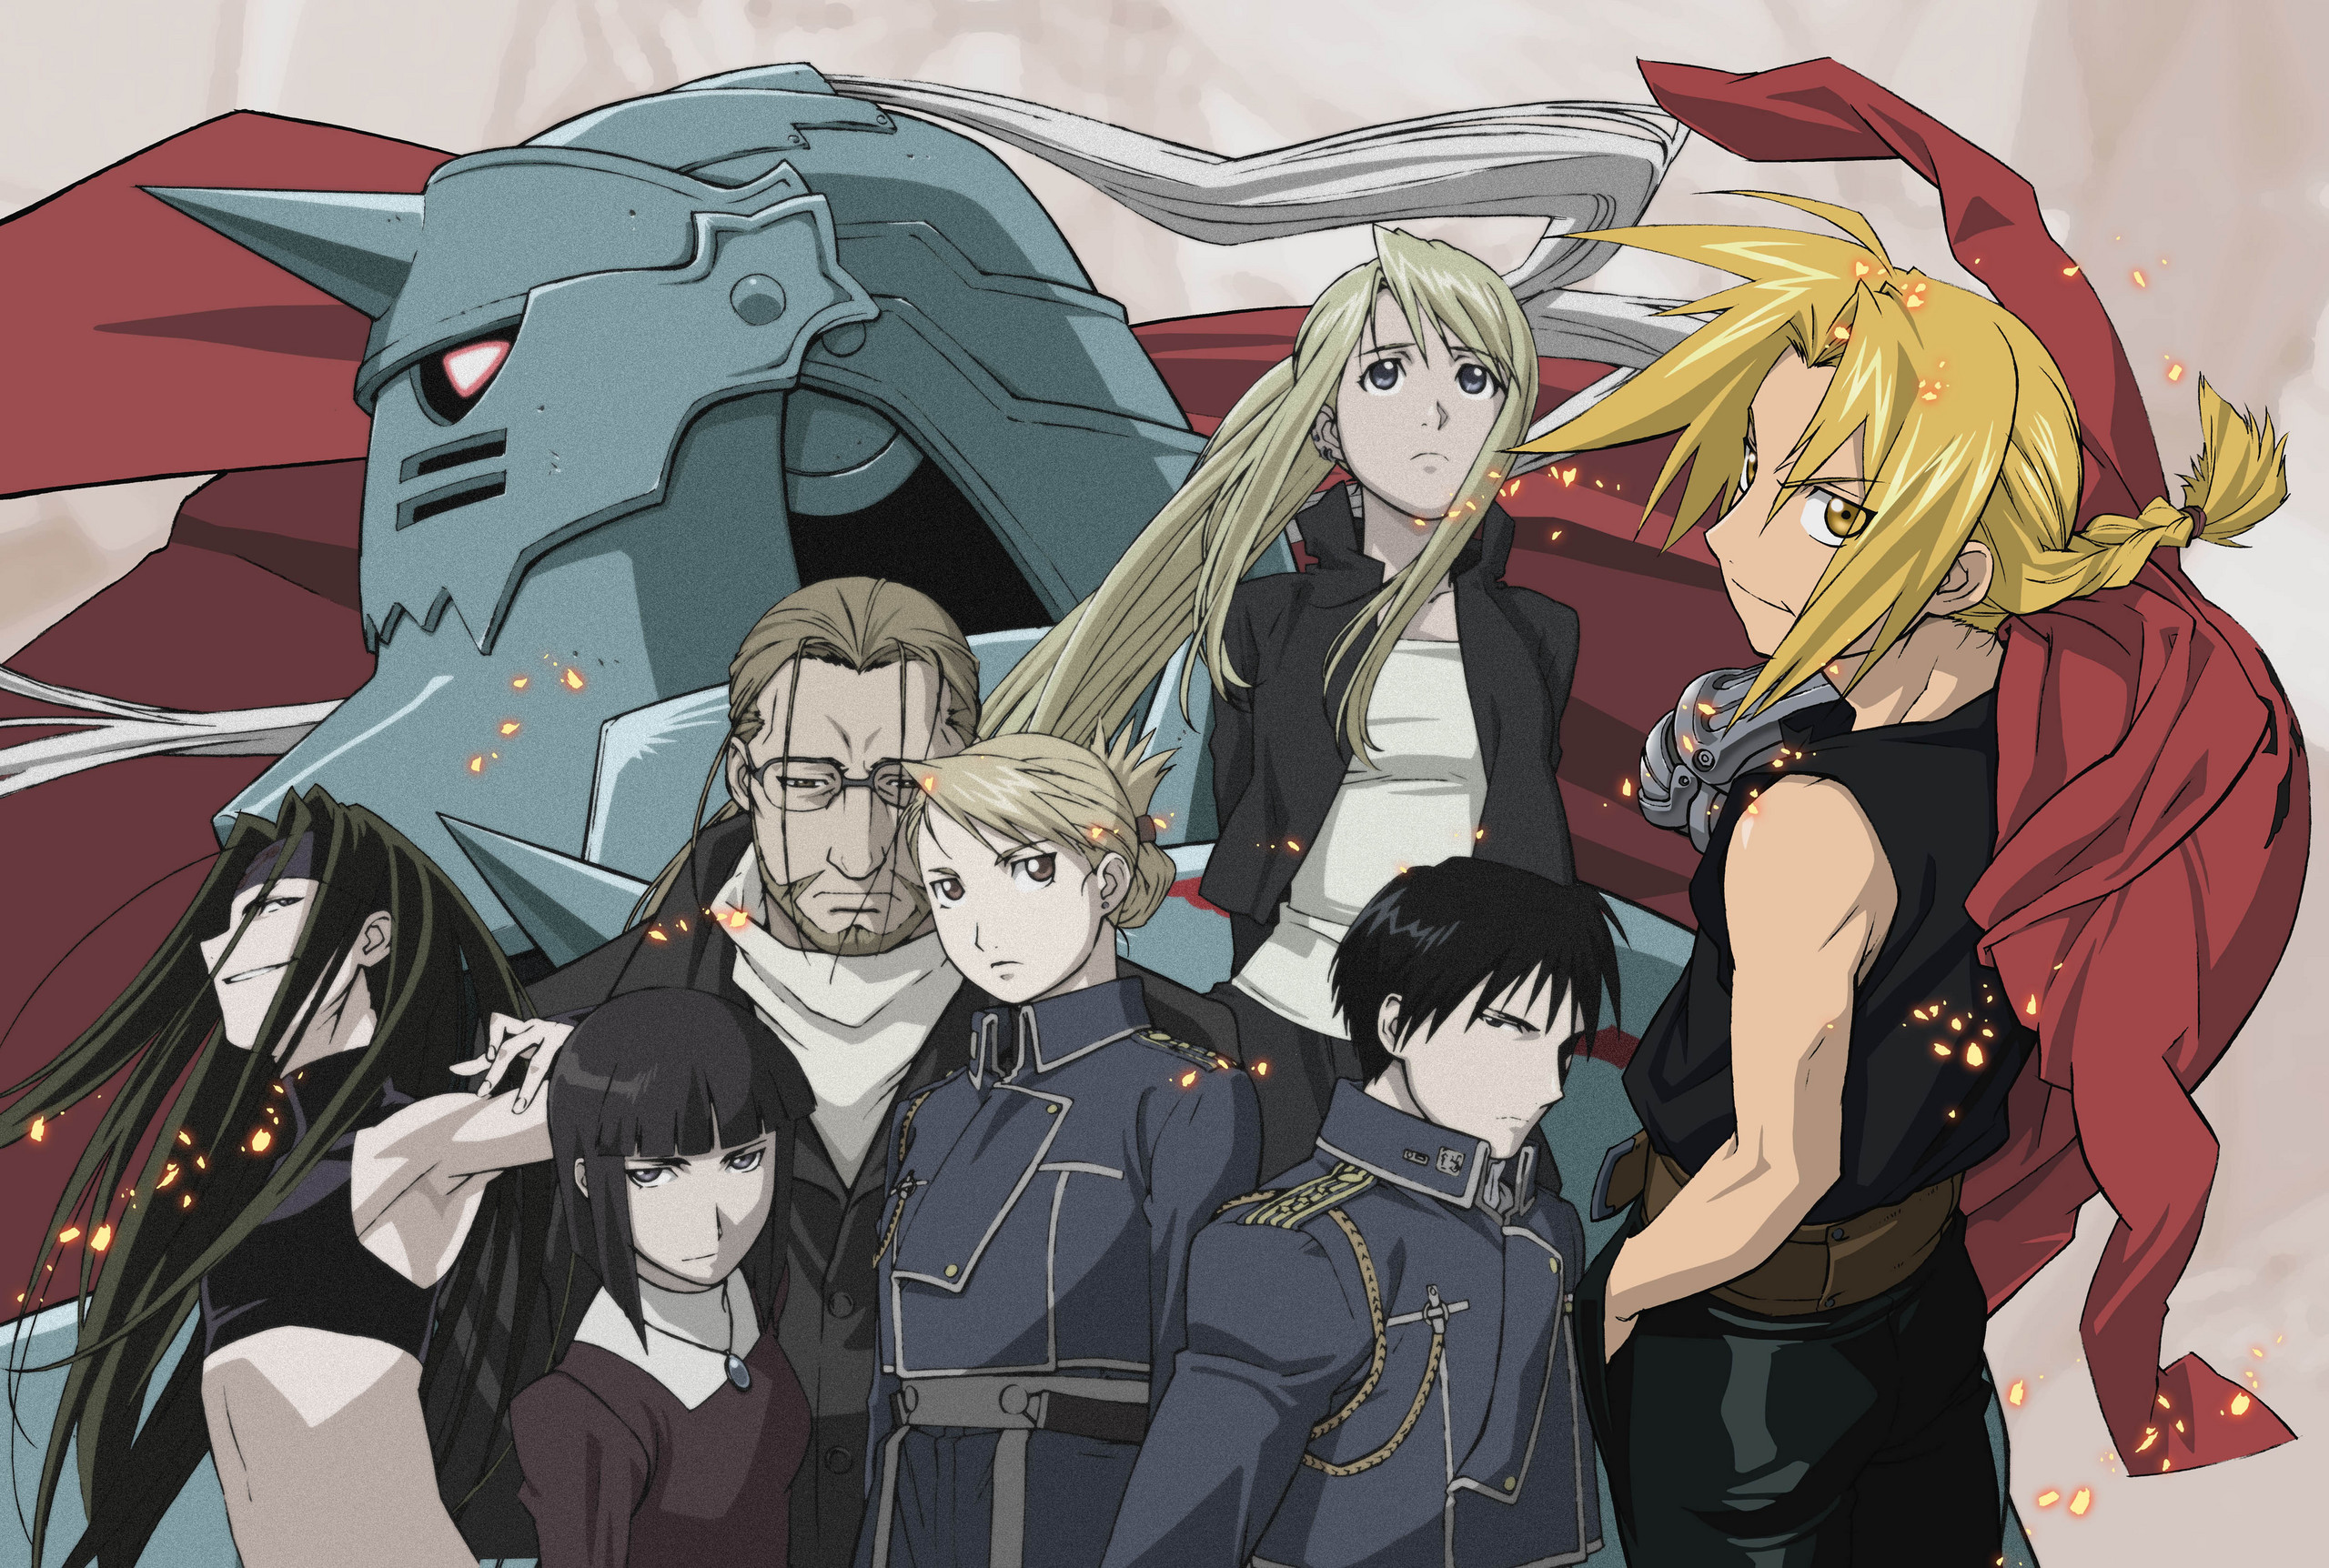 Geek Insider, GeekInsider, GeekInsider.com,, 'Fullmetal Alchemist' Movie to Include an All Japanese Cast, Entertainment, Anime, TV and Movies